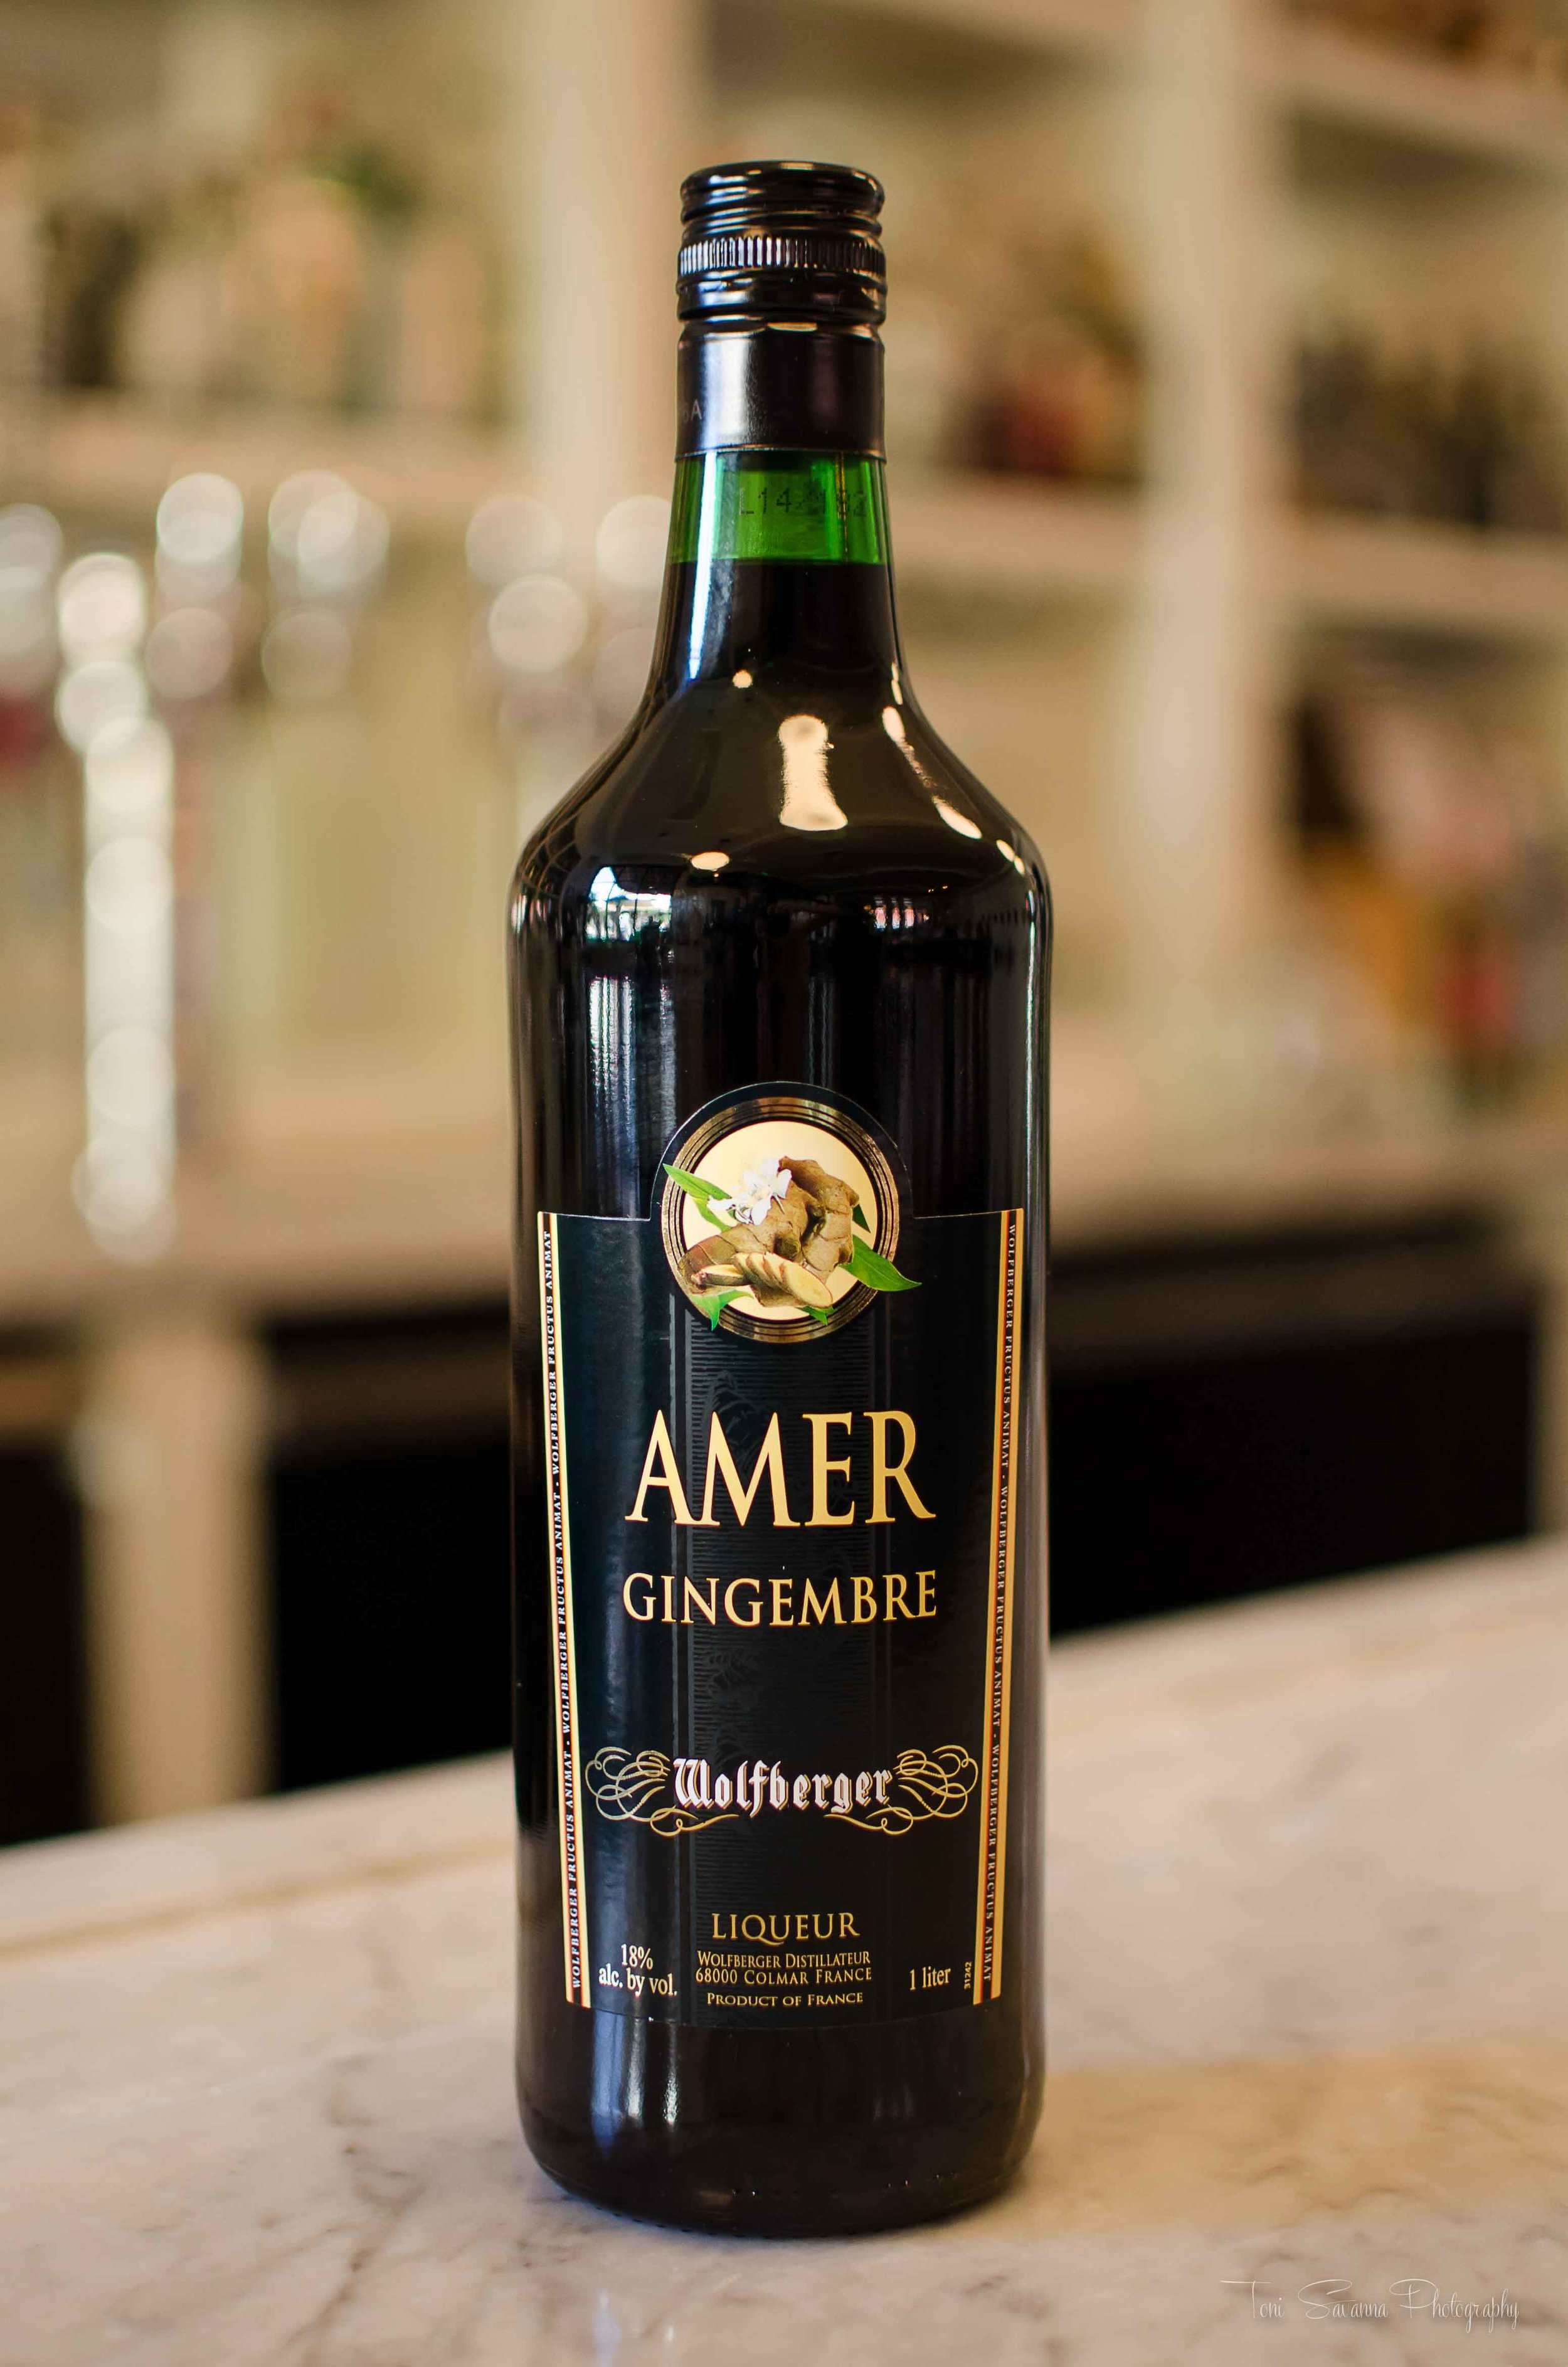 Wolfberger Amer Gingembre Bottle shot